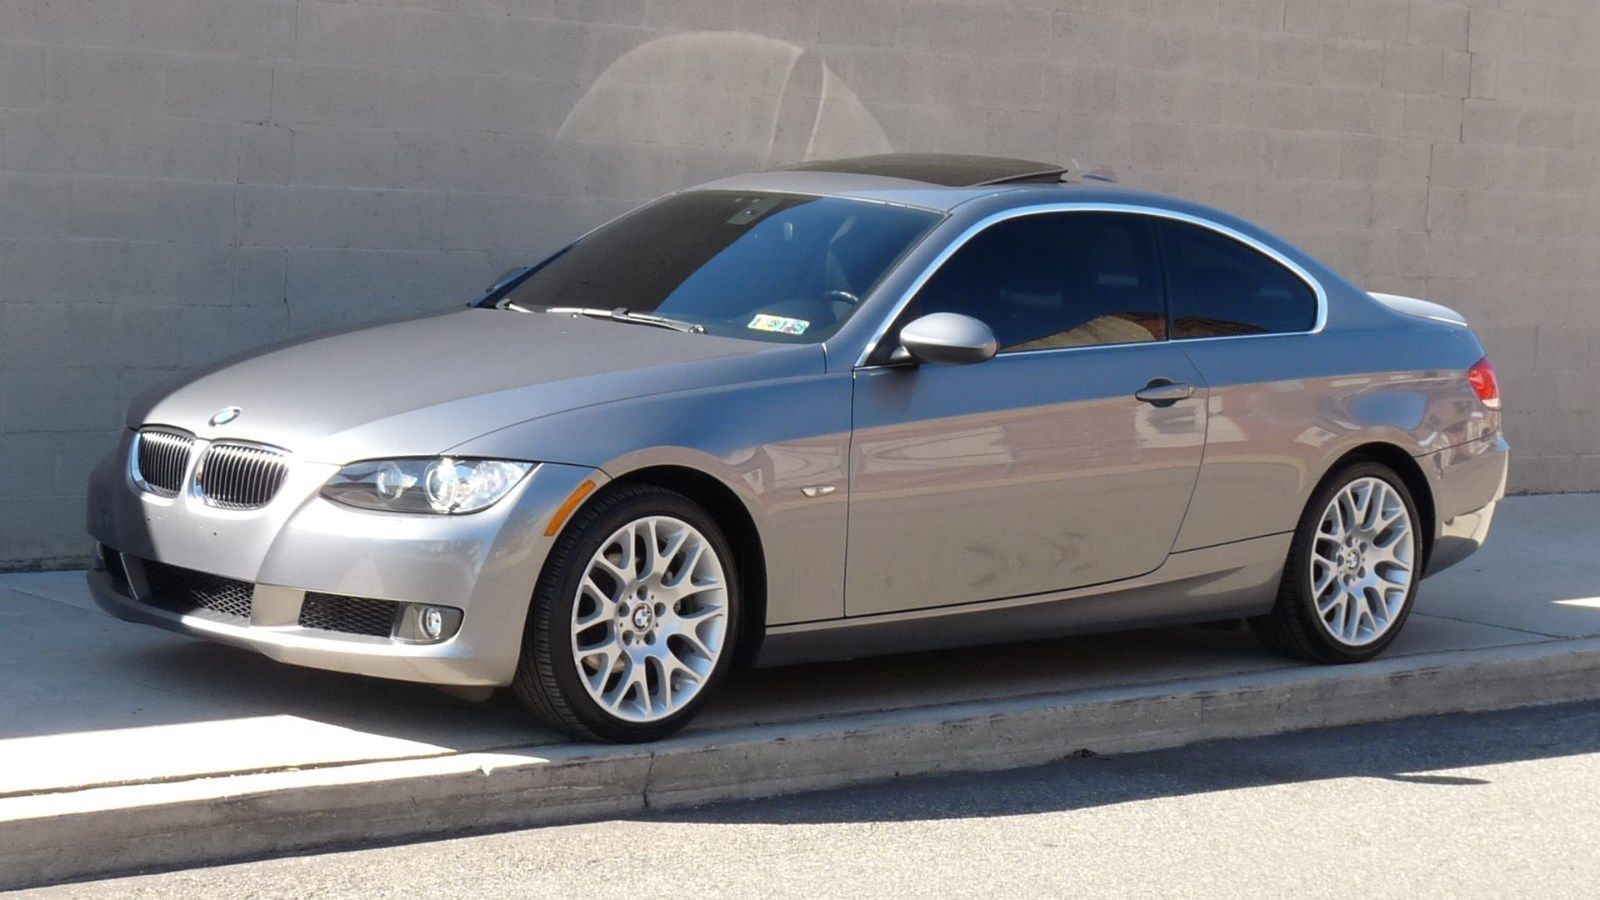 2007 Bmw 3 Series Coupe Beautiful 2007 Bmw 328xi Coupe 81 128 Miles